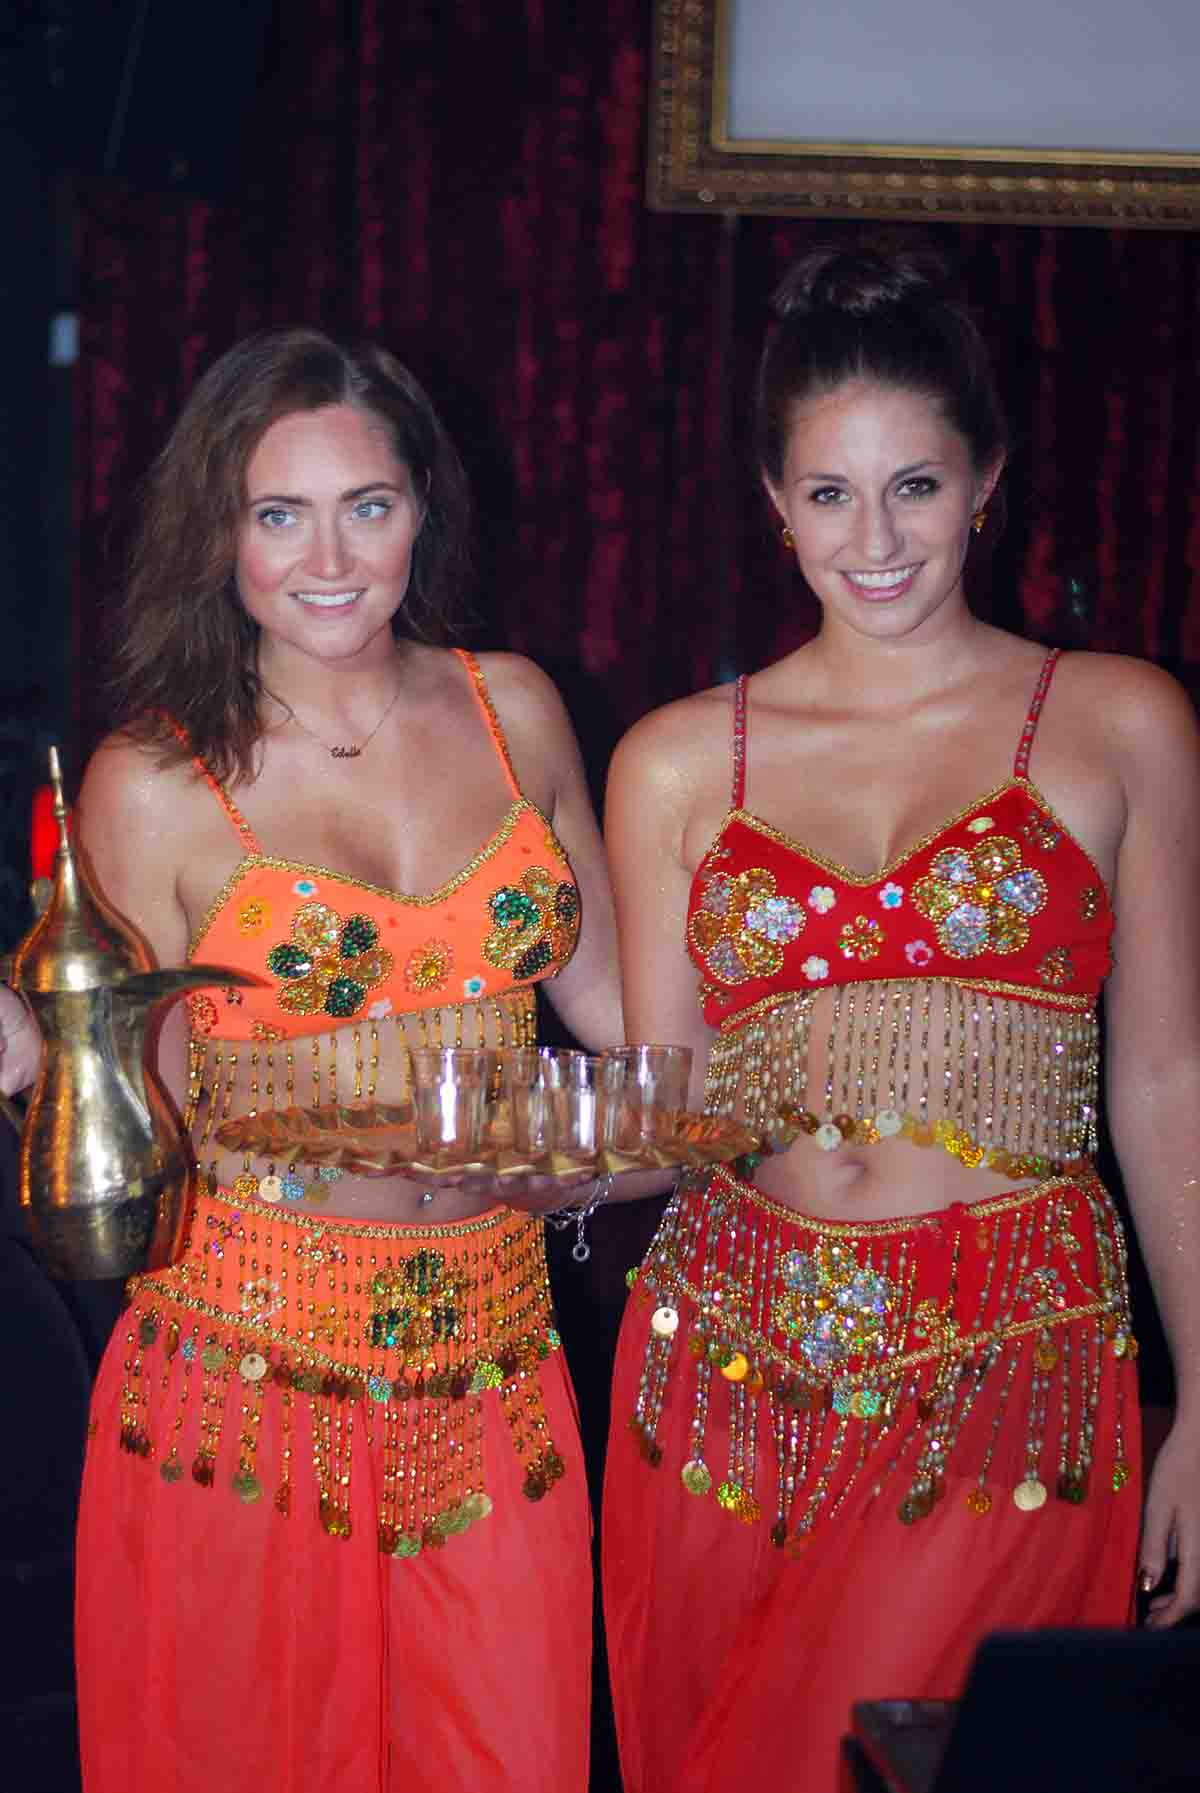 Hostesses for events and parties planned by Pegasus Events Pvt Ltd